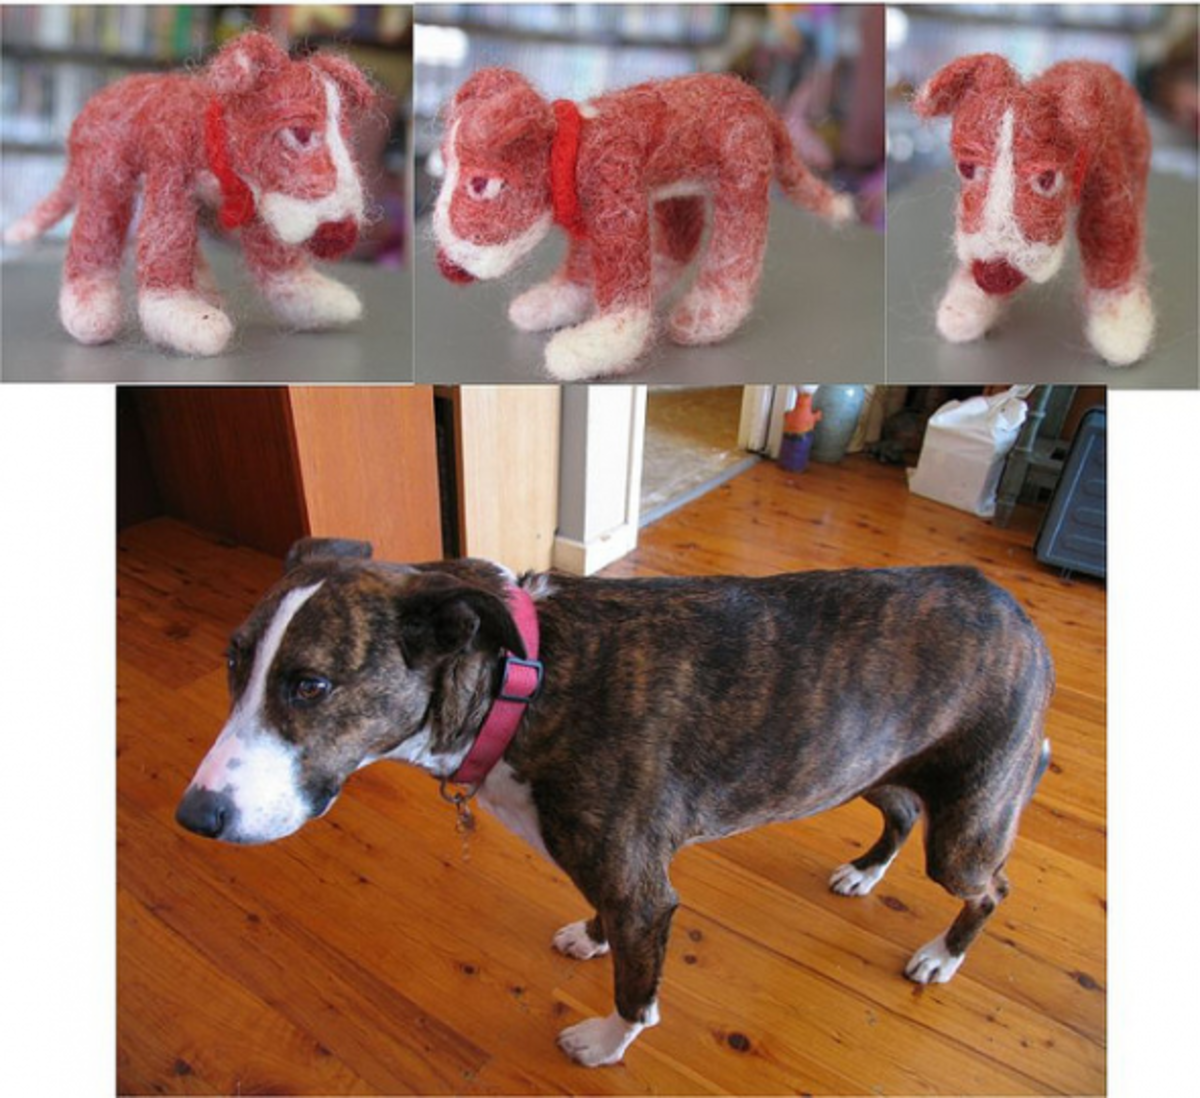 Why not try to replicate your own pet in felt?